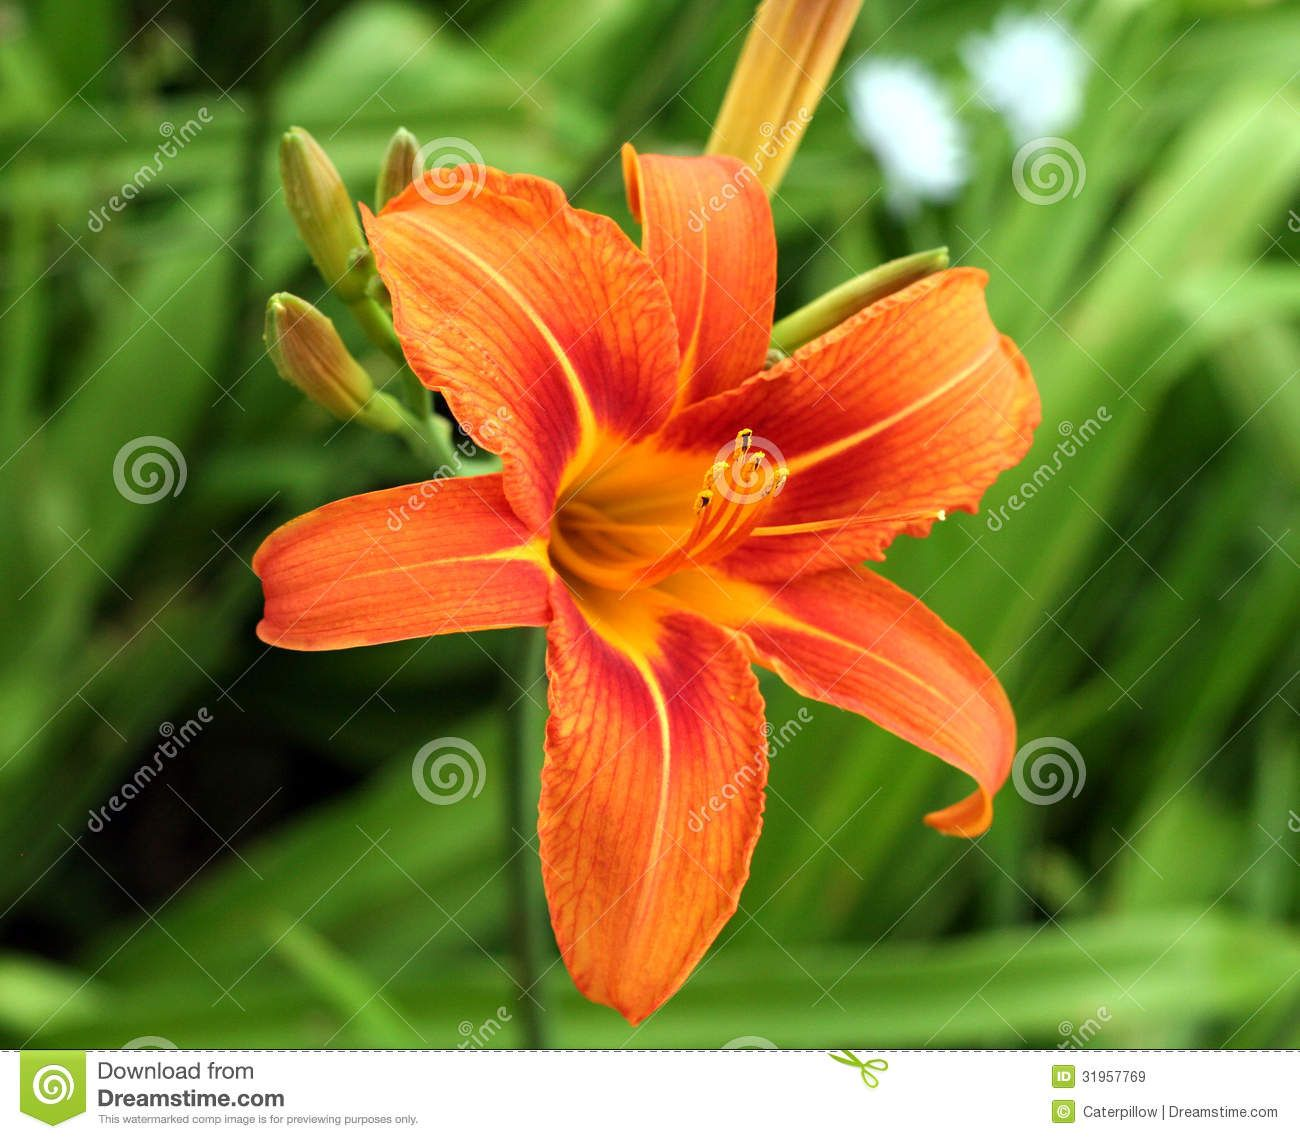 Tiger lily flower tiger lily flower royalty free stock images tiger lily flower tiger lily flower royalty free stock images image 31957769 izmirmasajfo